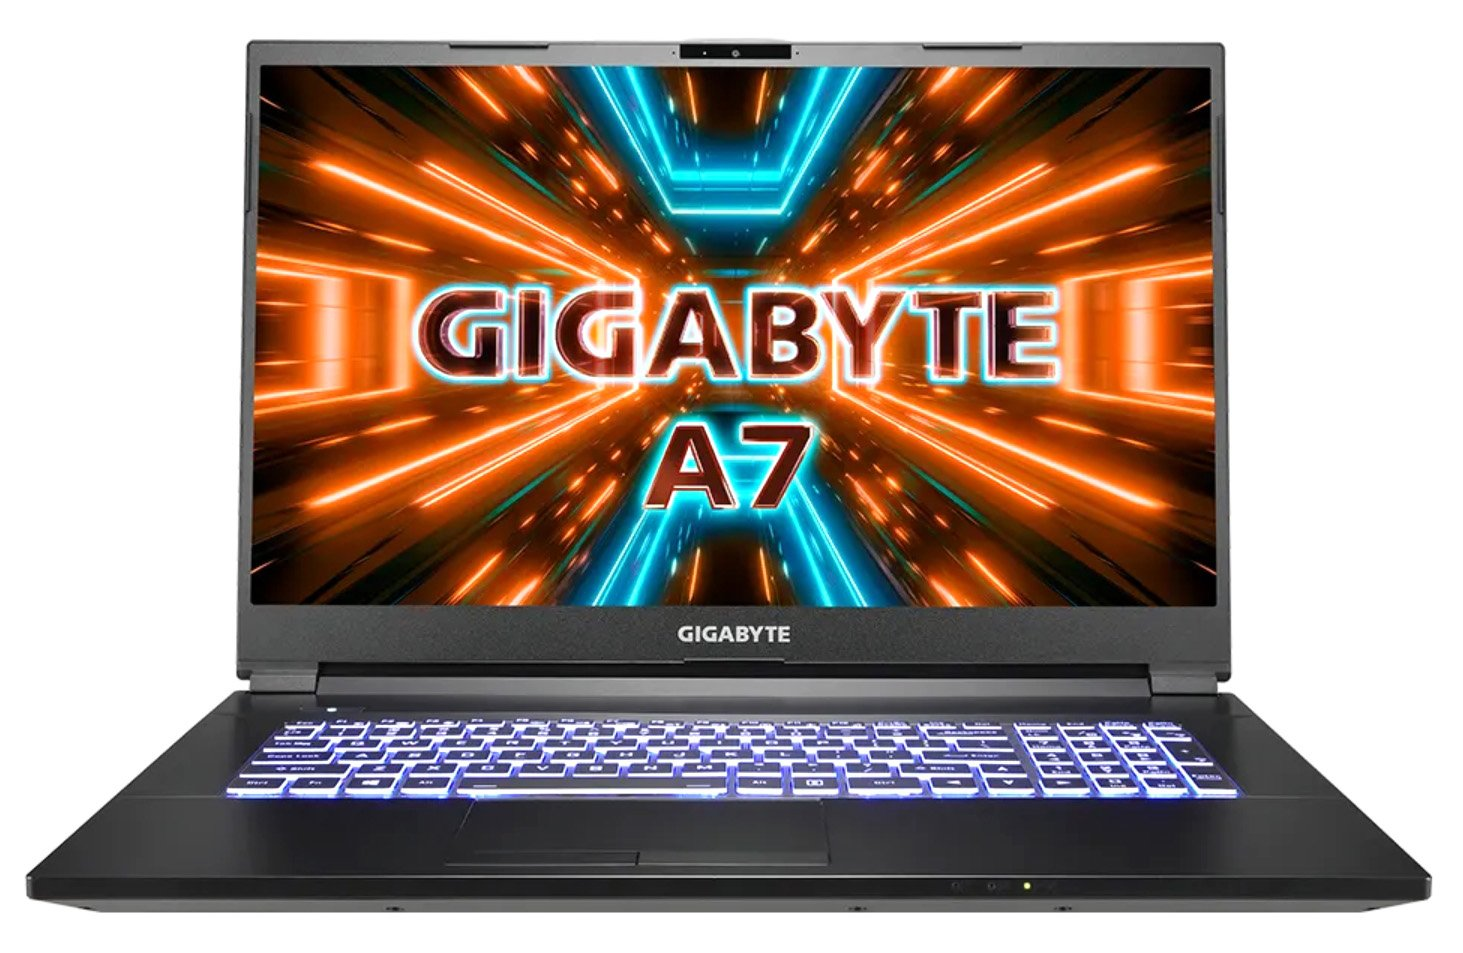 Gigabyte A7-X1 - Value Alrounder Laptop for 3D Modeling and Rendering